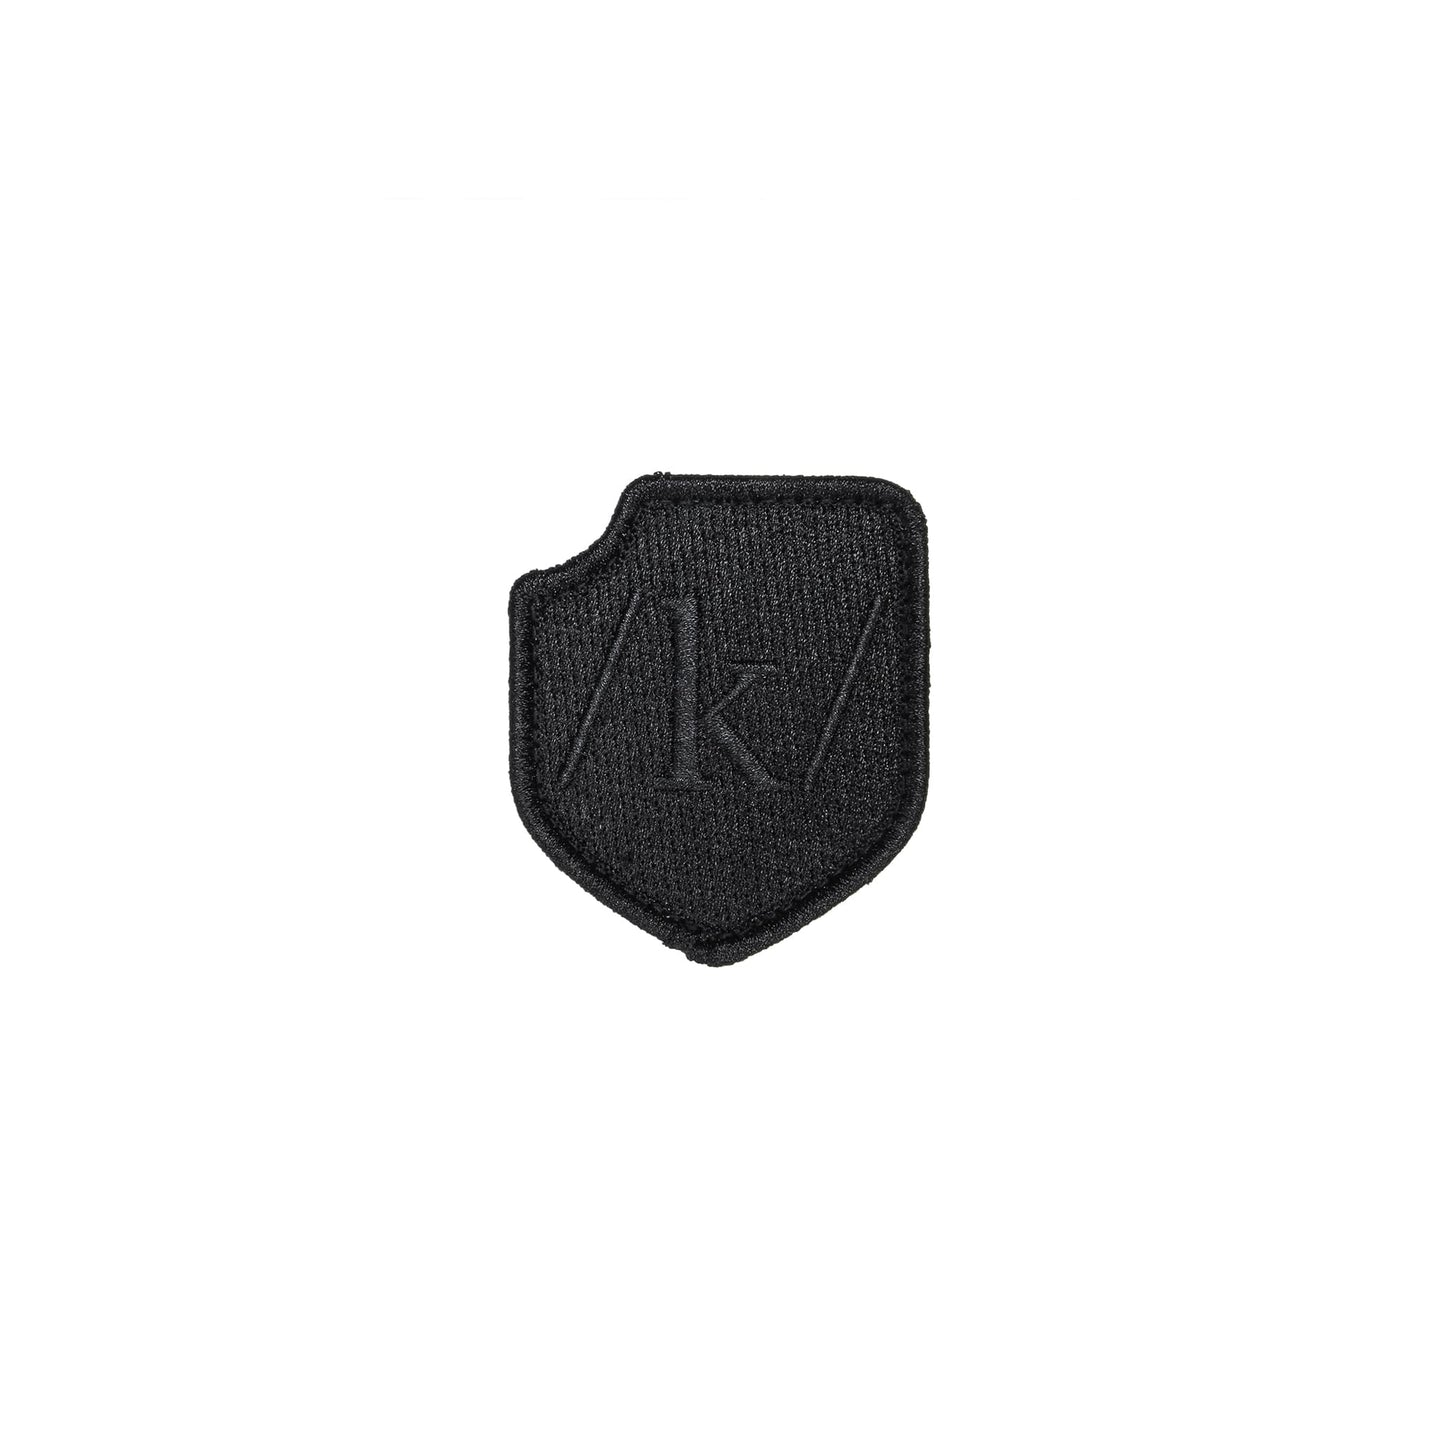 /k/ Shield MK3 Patch